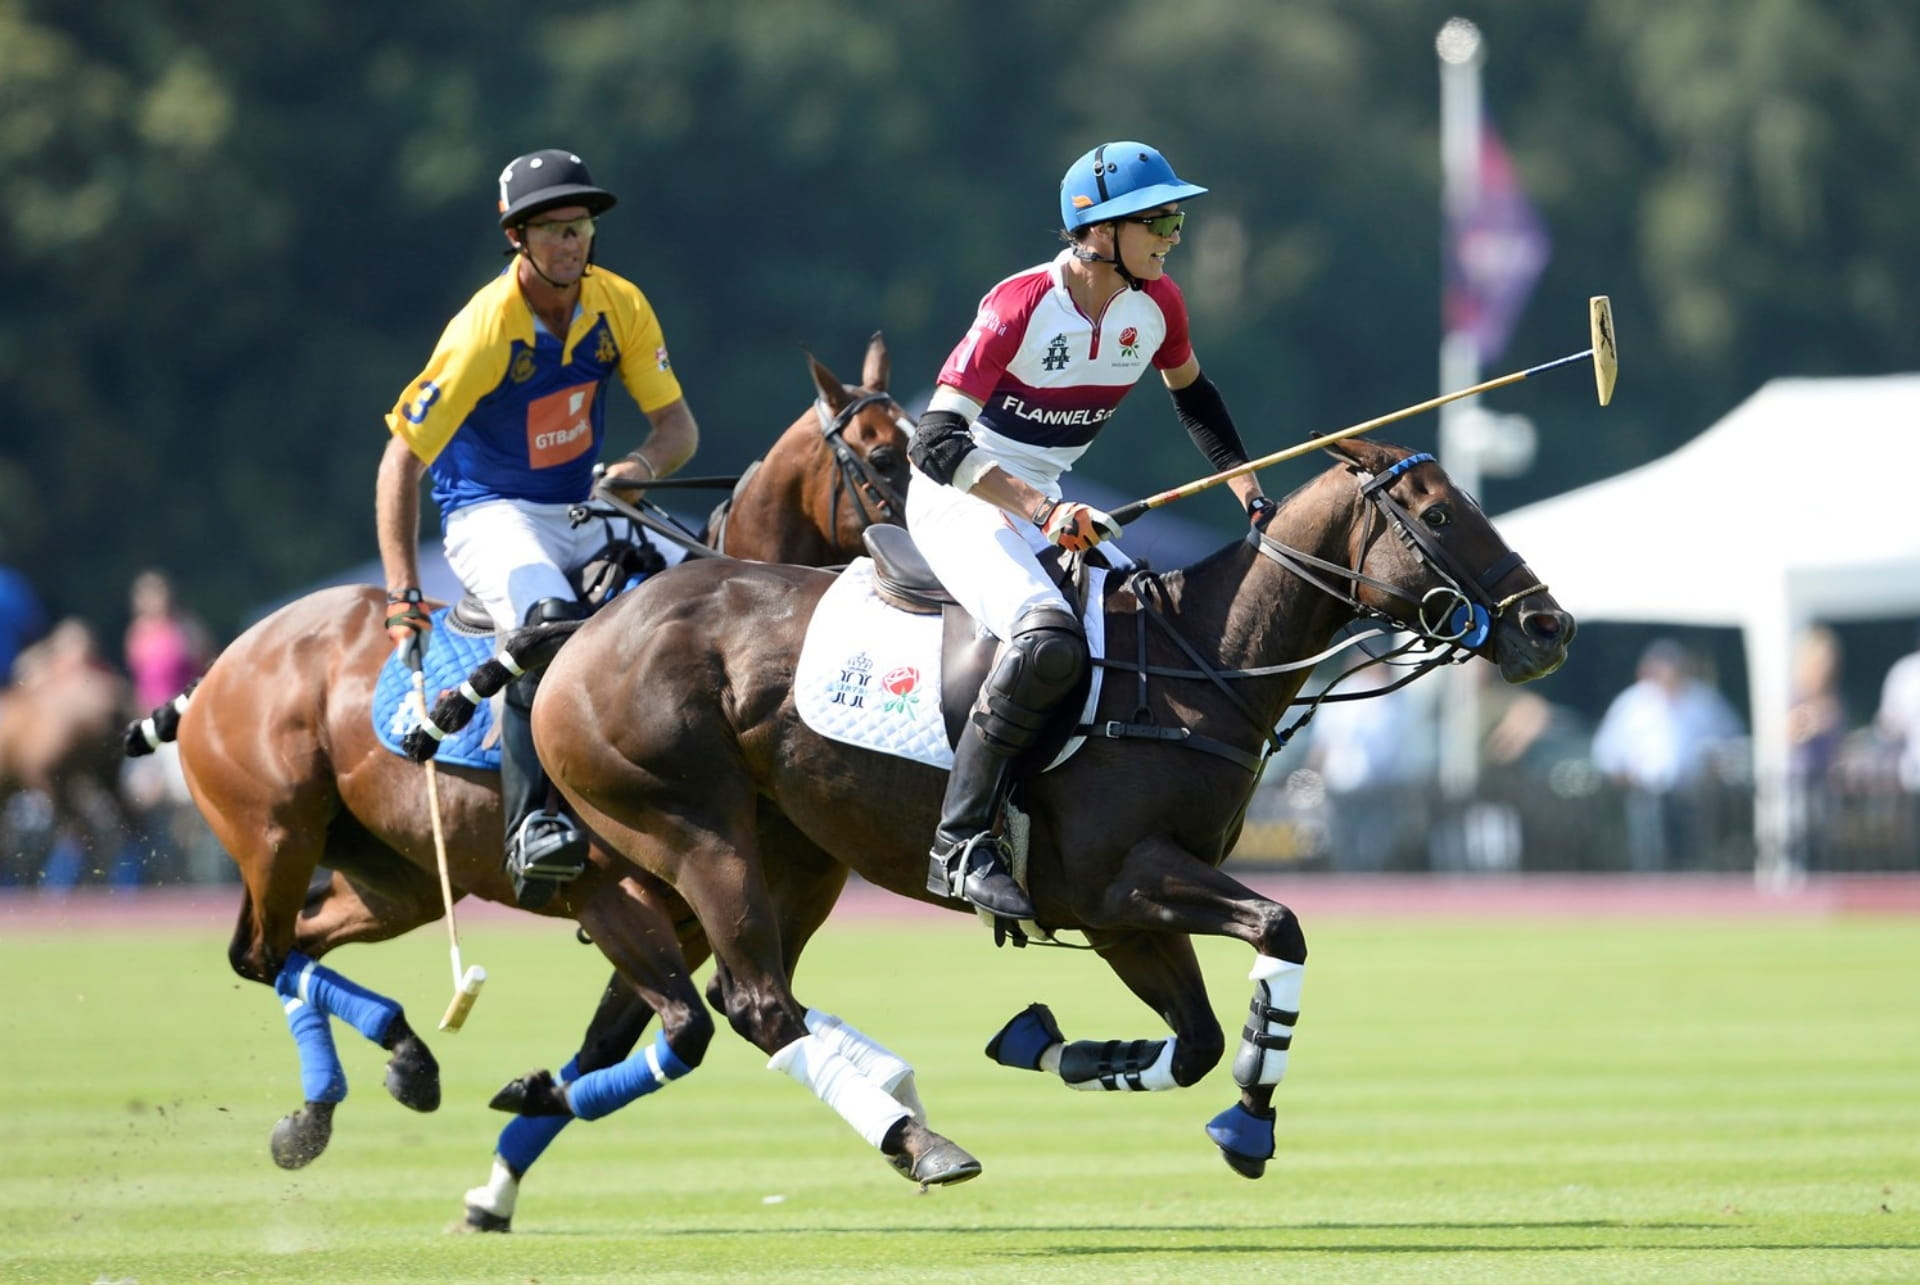 Players-in-action-polo-match